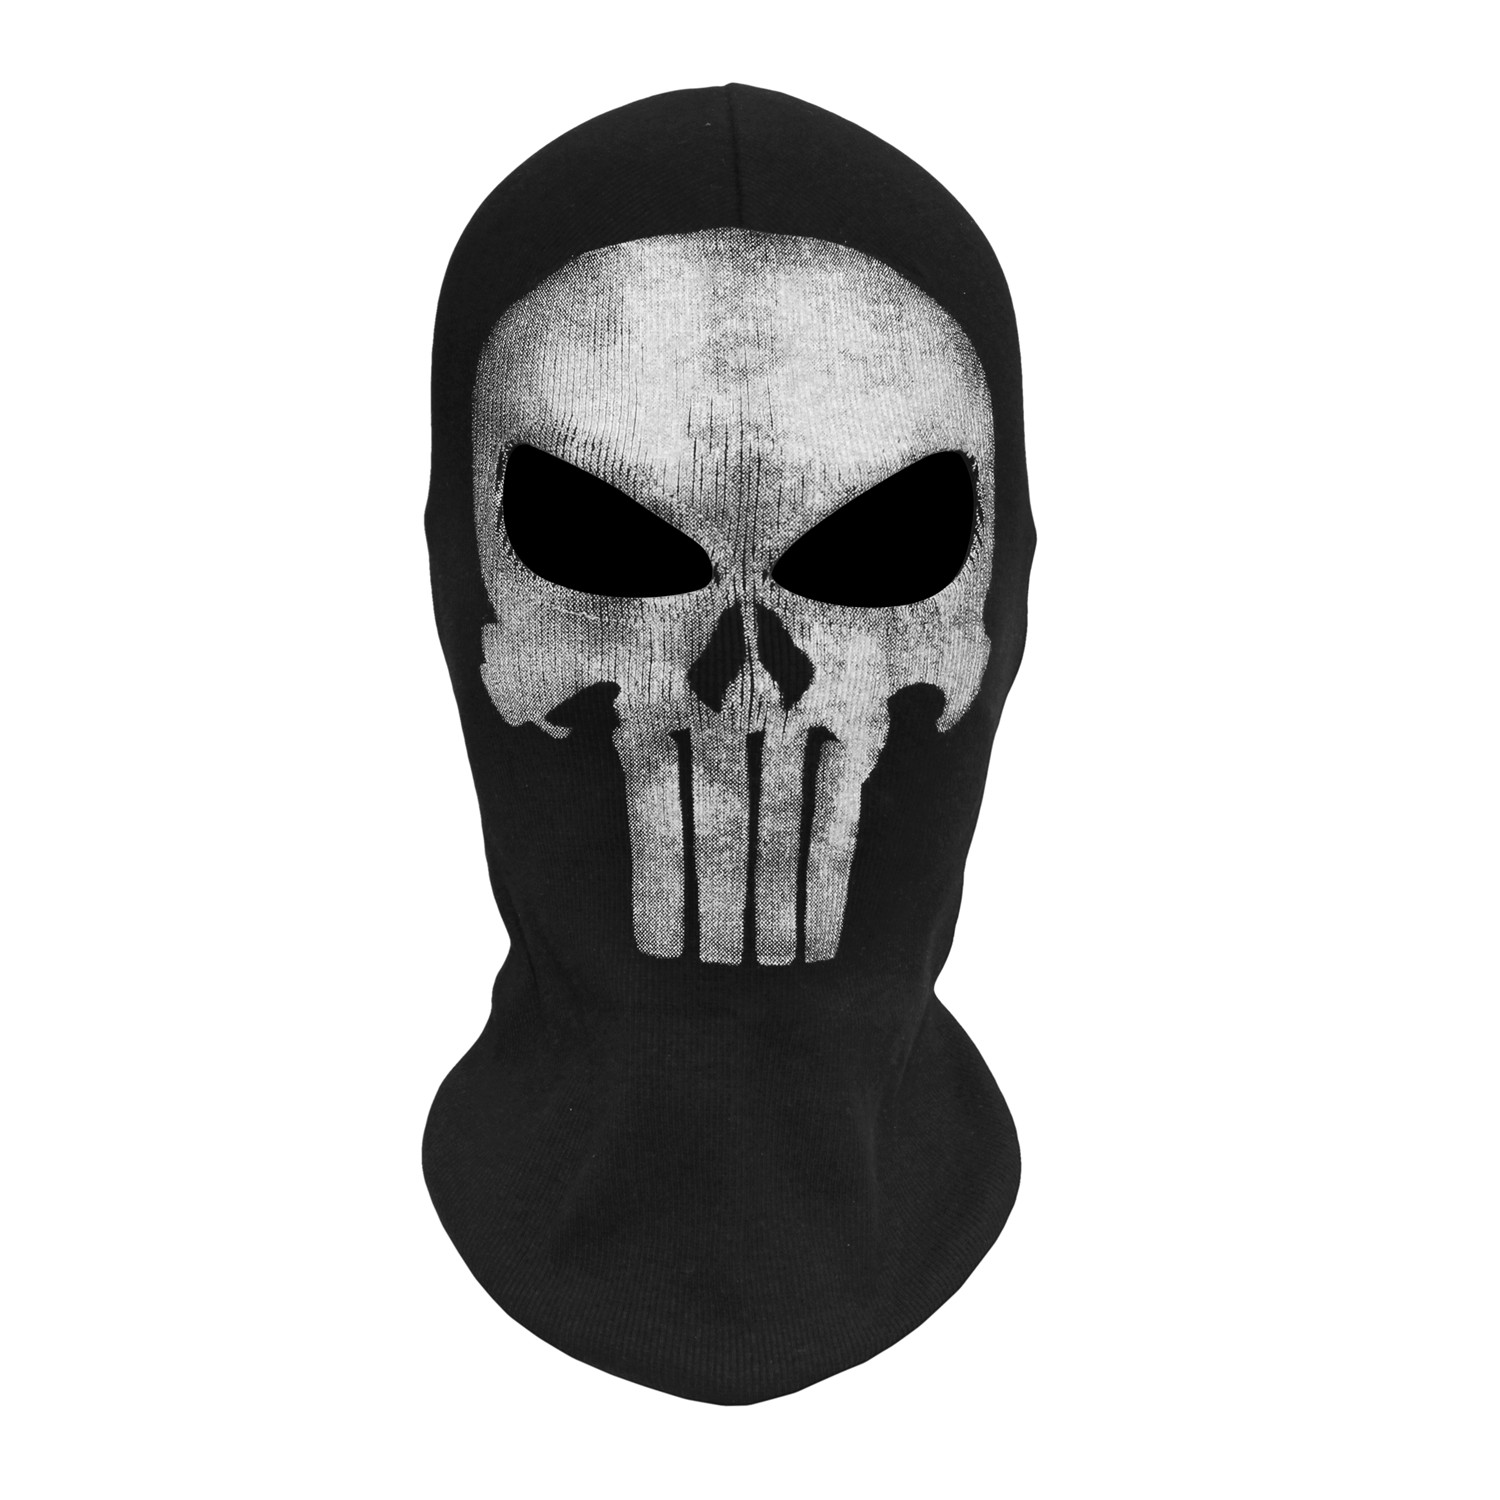 Compare Prices on Skull Face Mask- Online Shopping/Buy Low Price ...